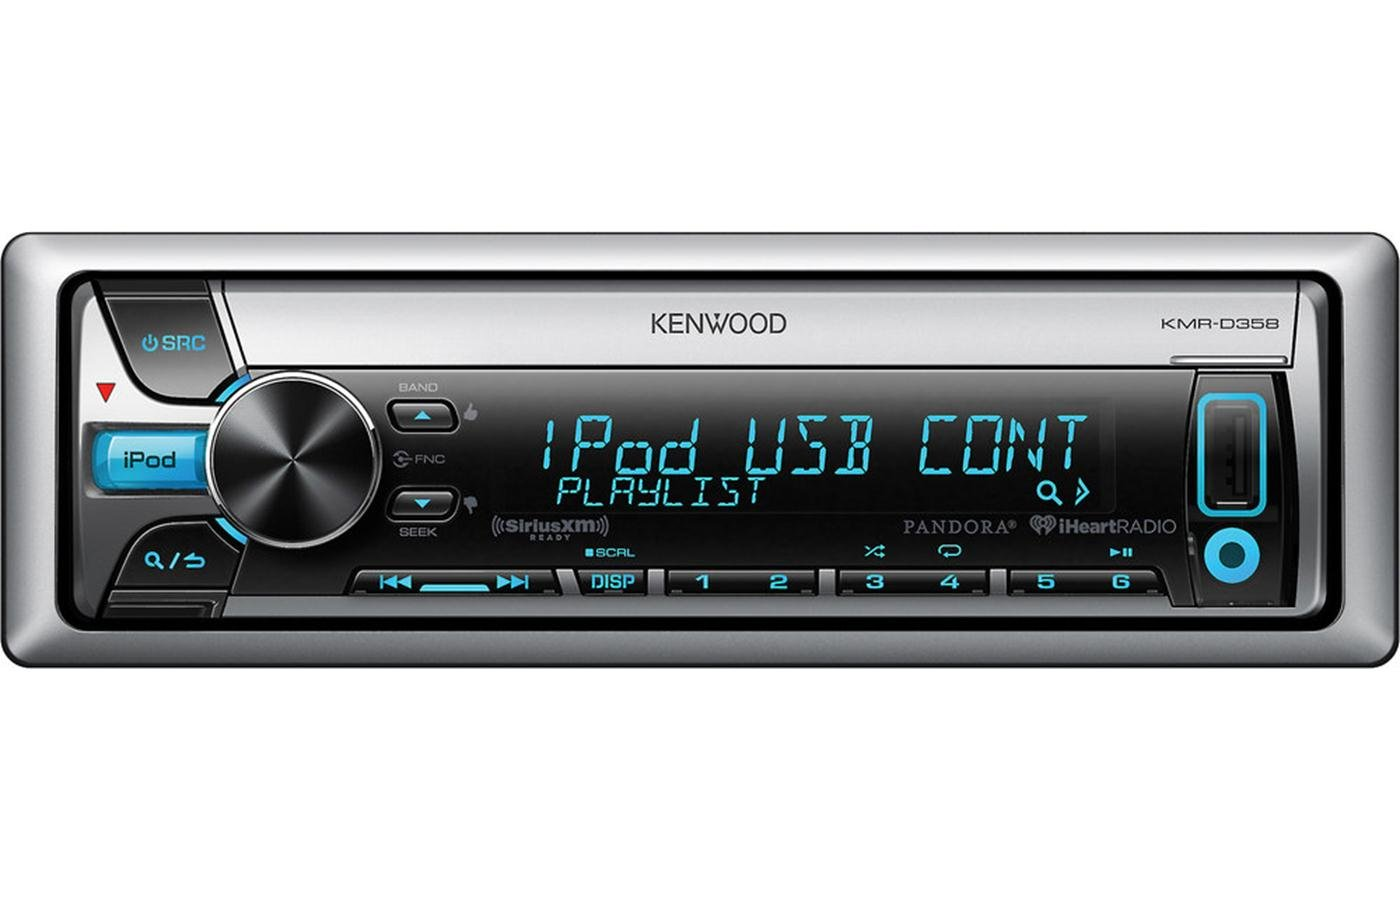 Amazon.com: Kenwood KMR-D358 Marine CD Receiver with Font USB and AUX-IN:  Car Electronics